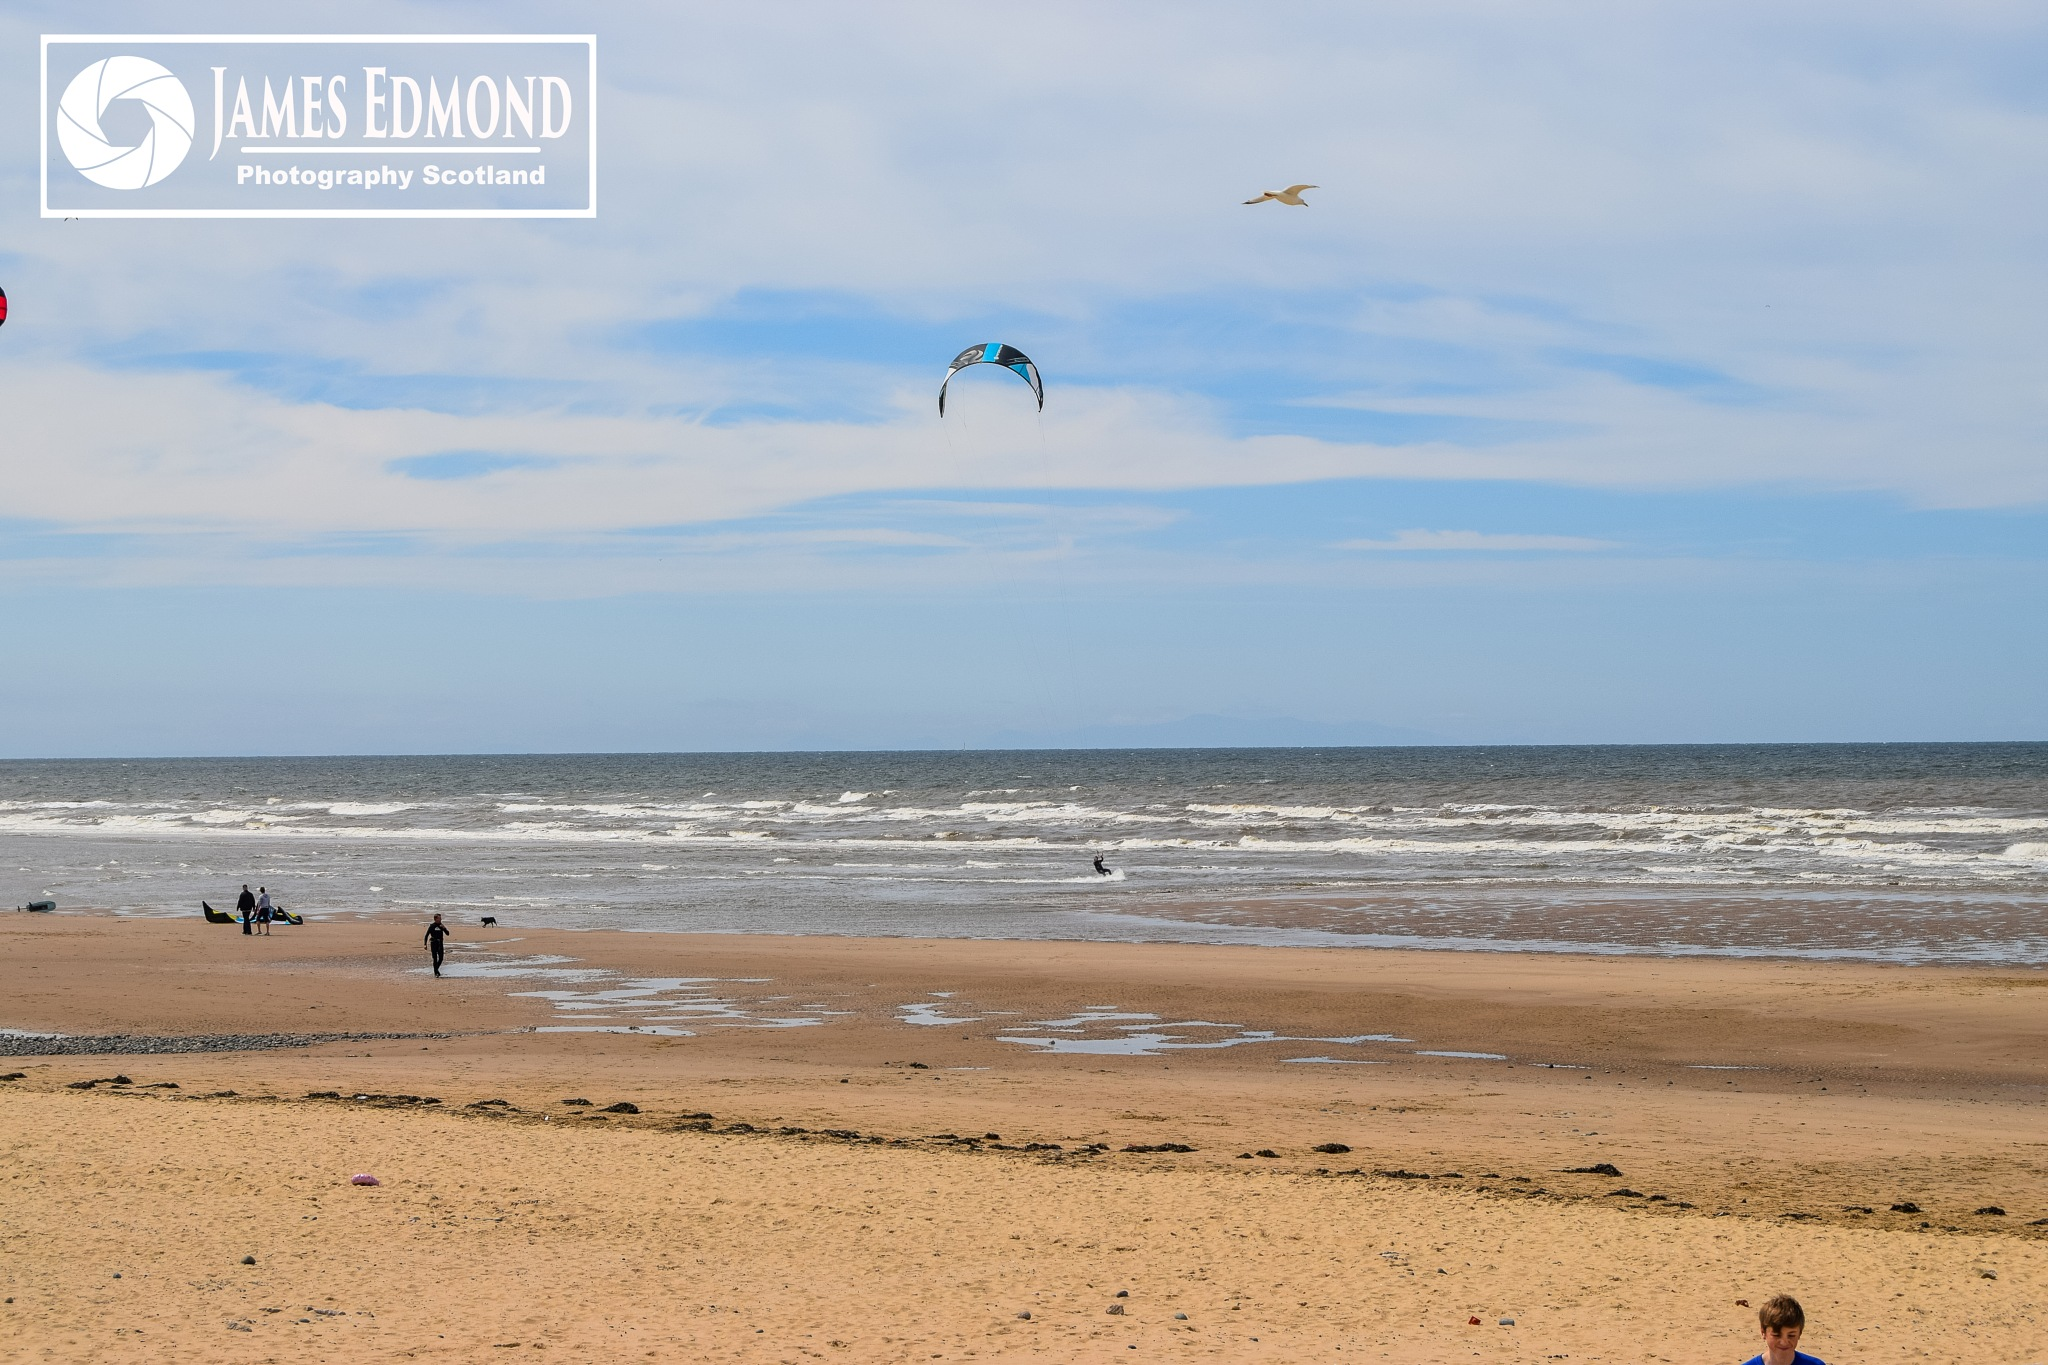 St Annes Beach nr Blackpool by James Edmond Photography